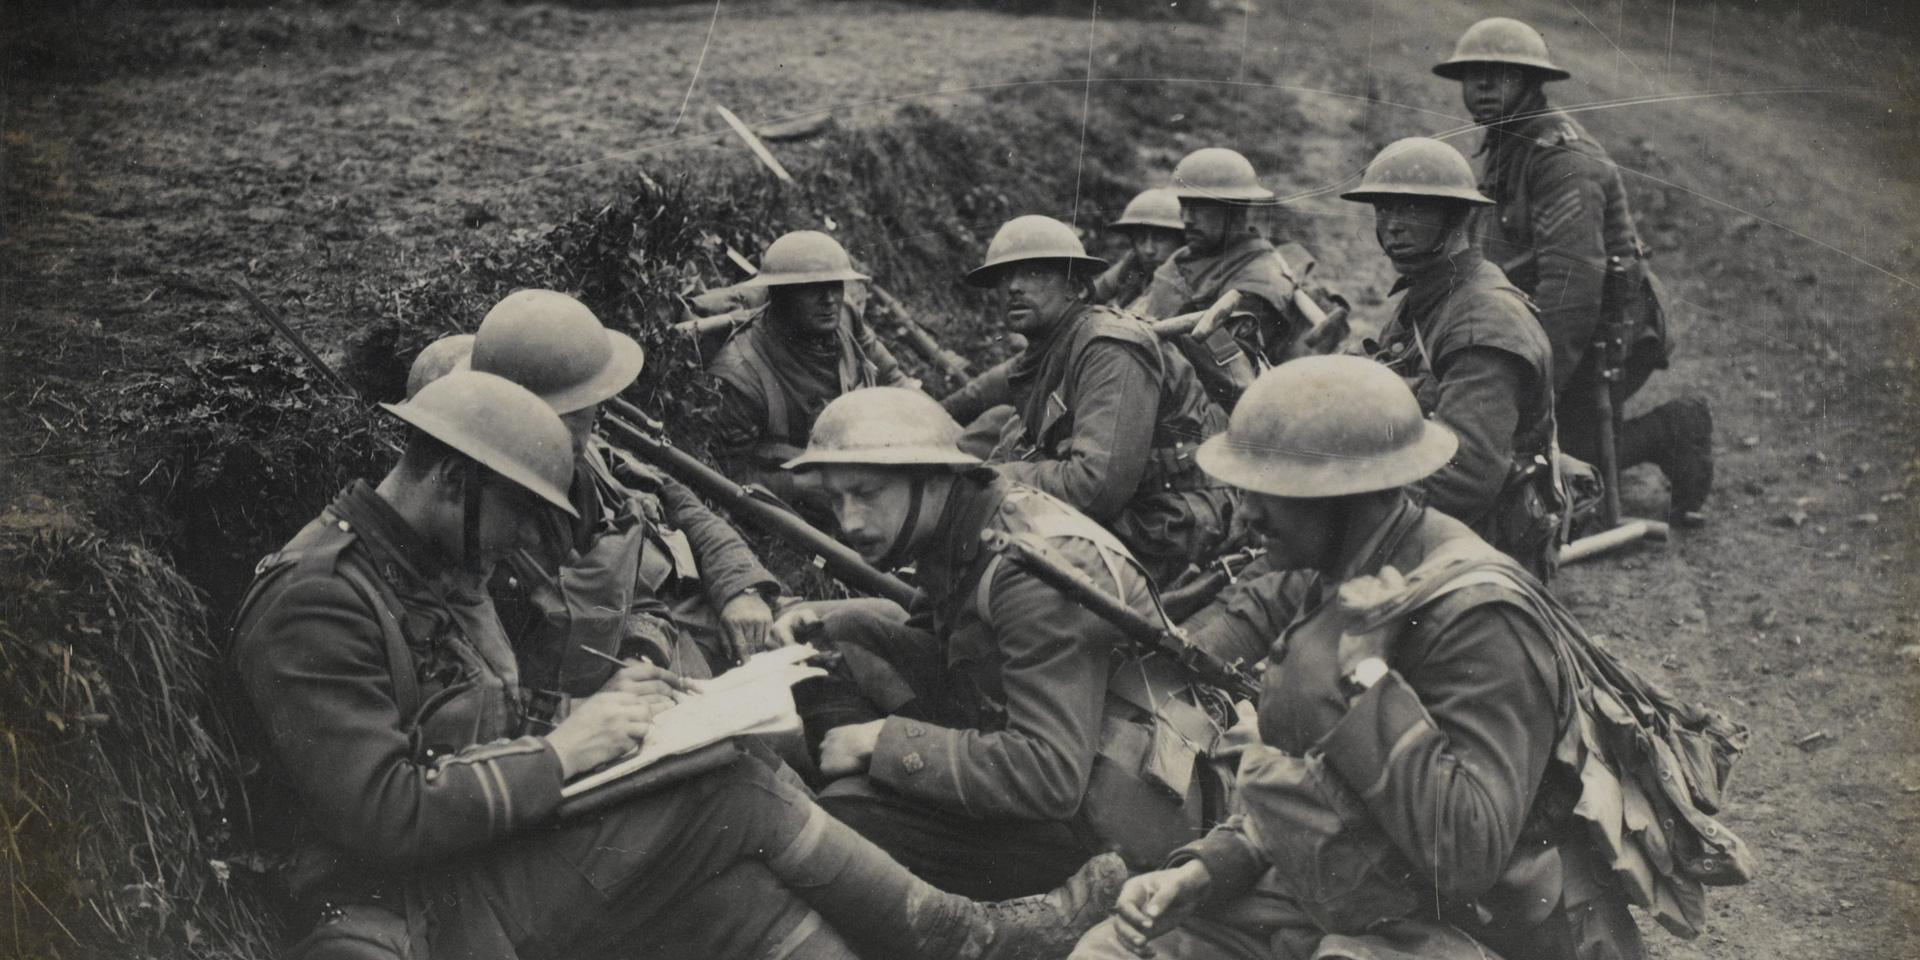 Soldiers rest in a ditch as their officers consult a map, 16 April 1918